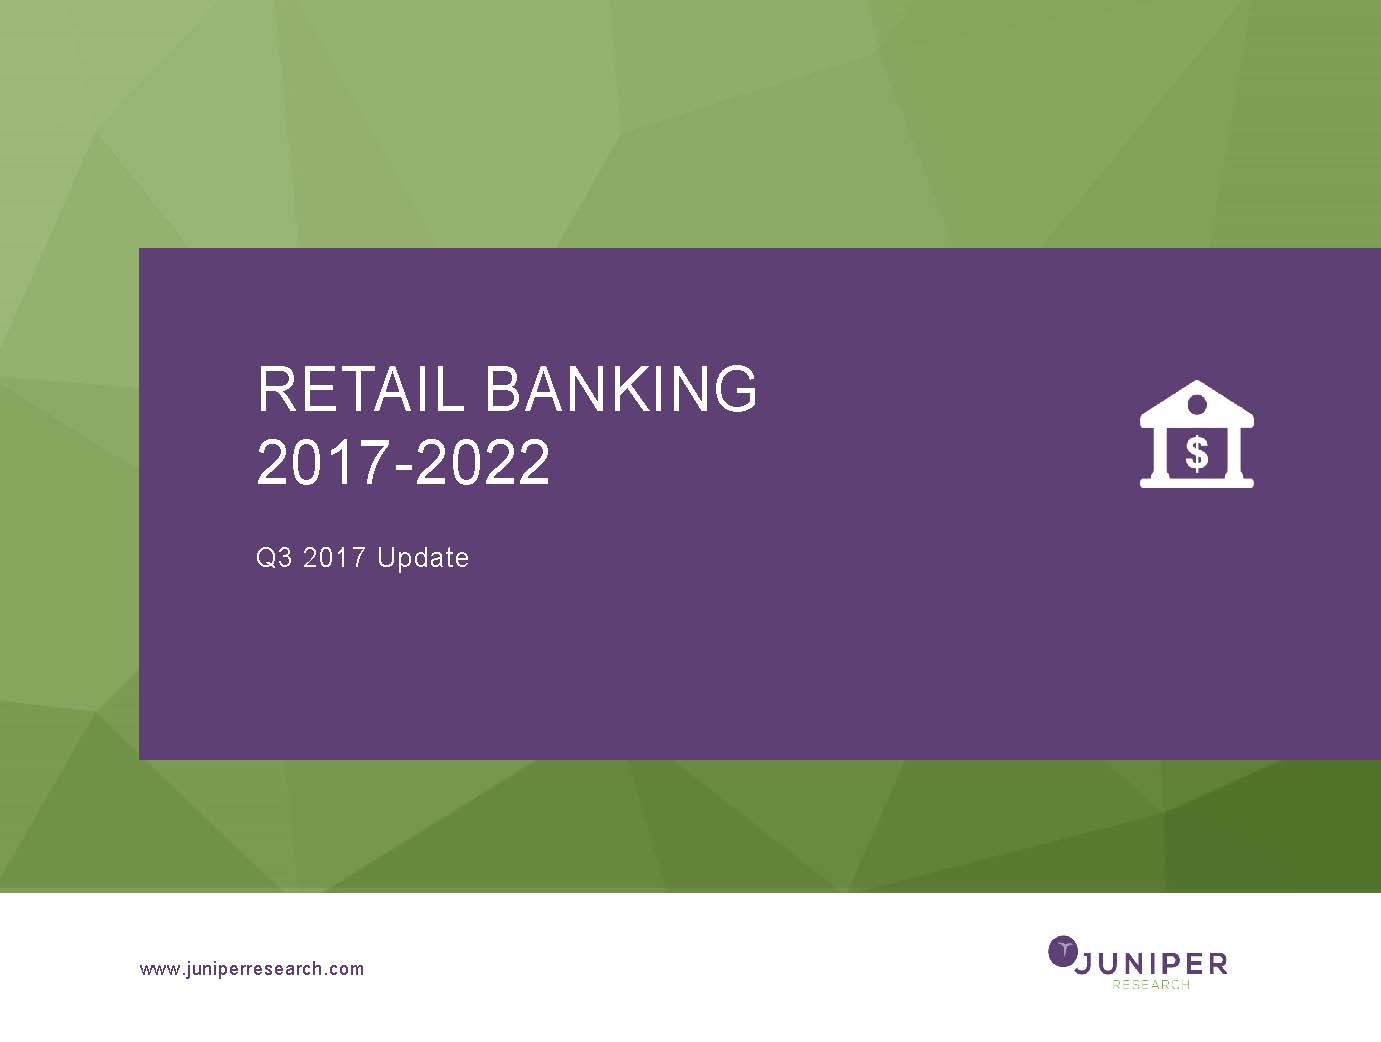 retail banking research paper